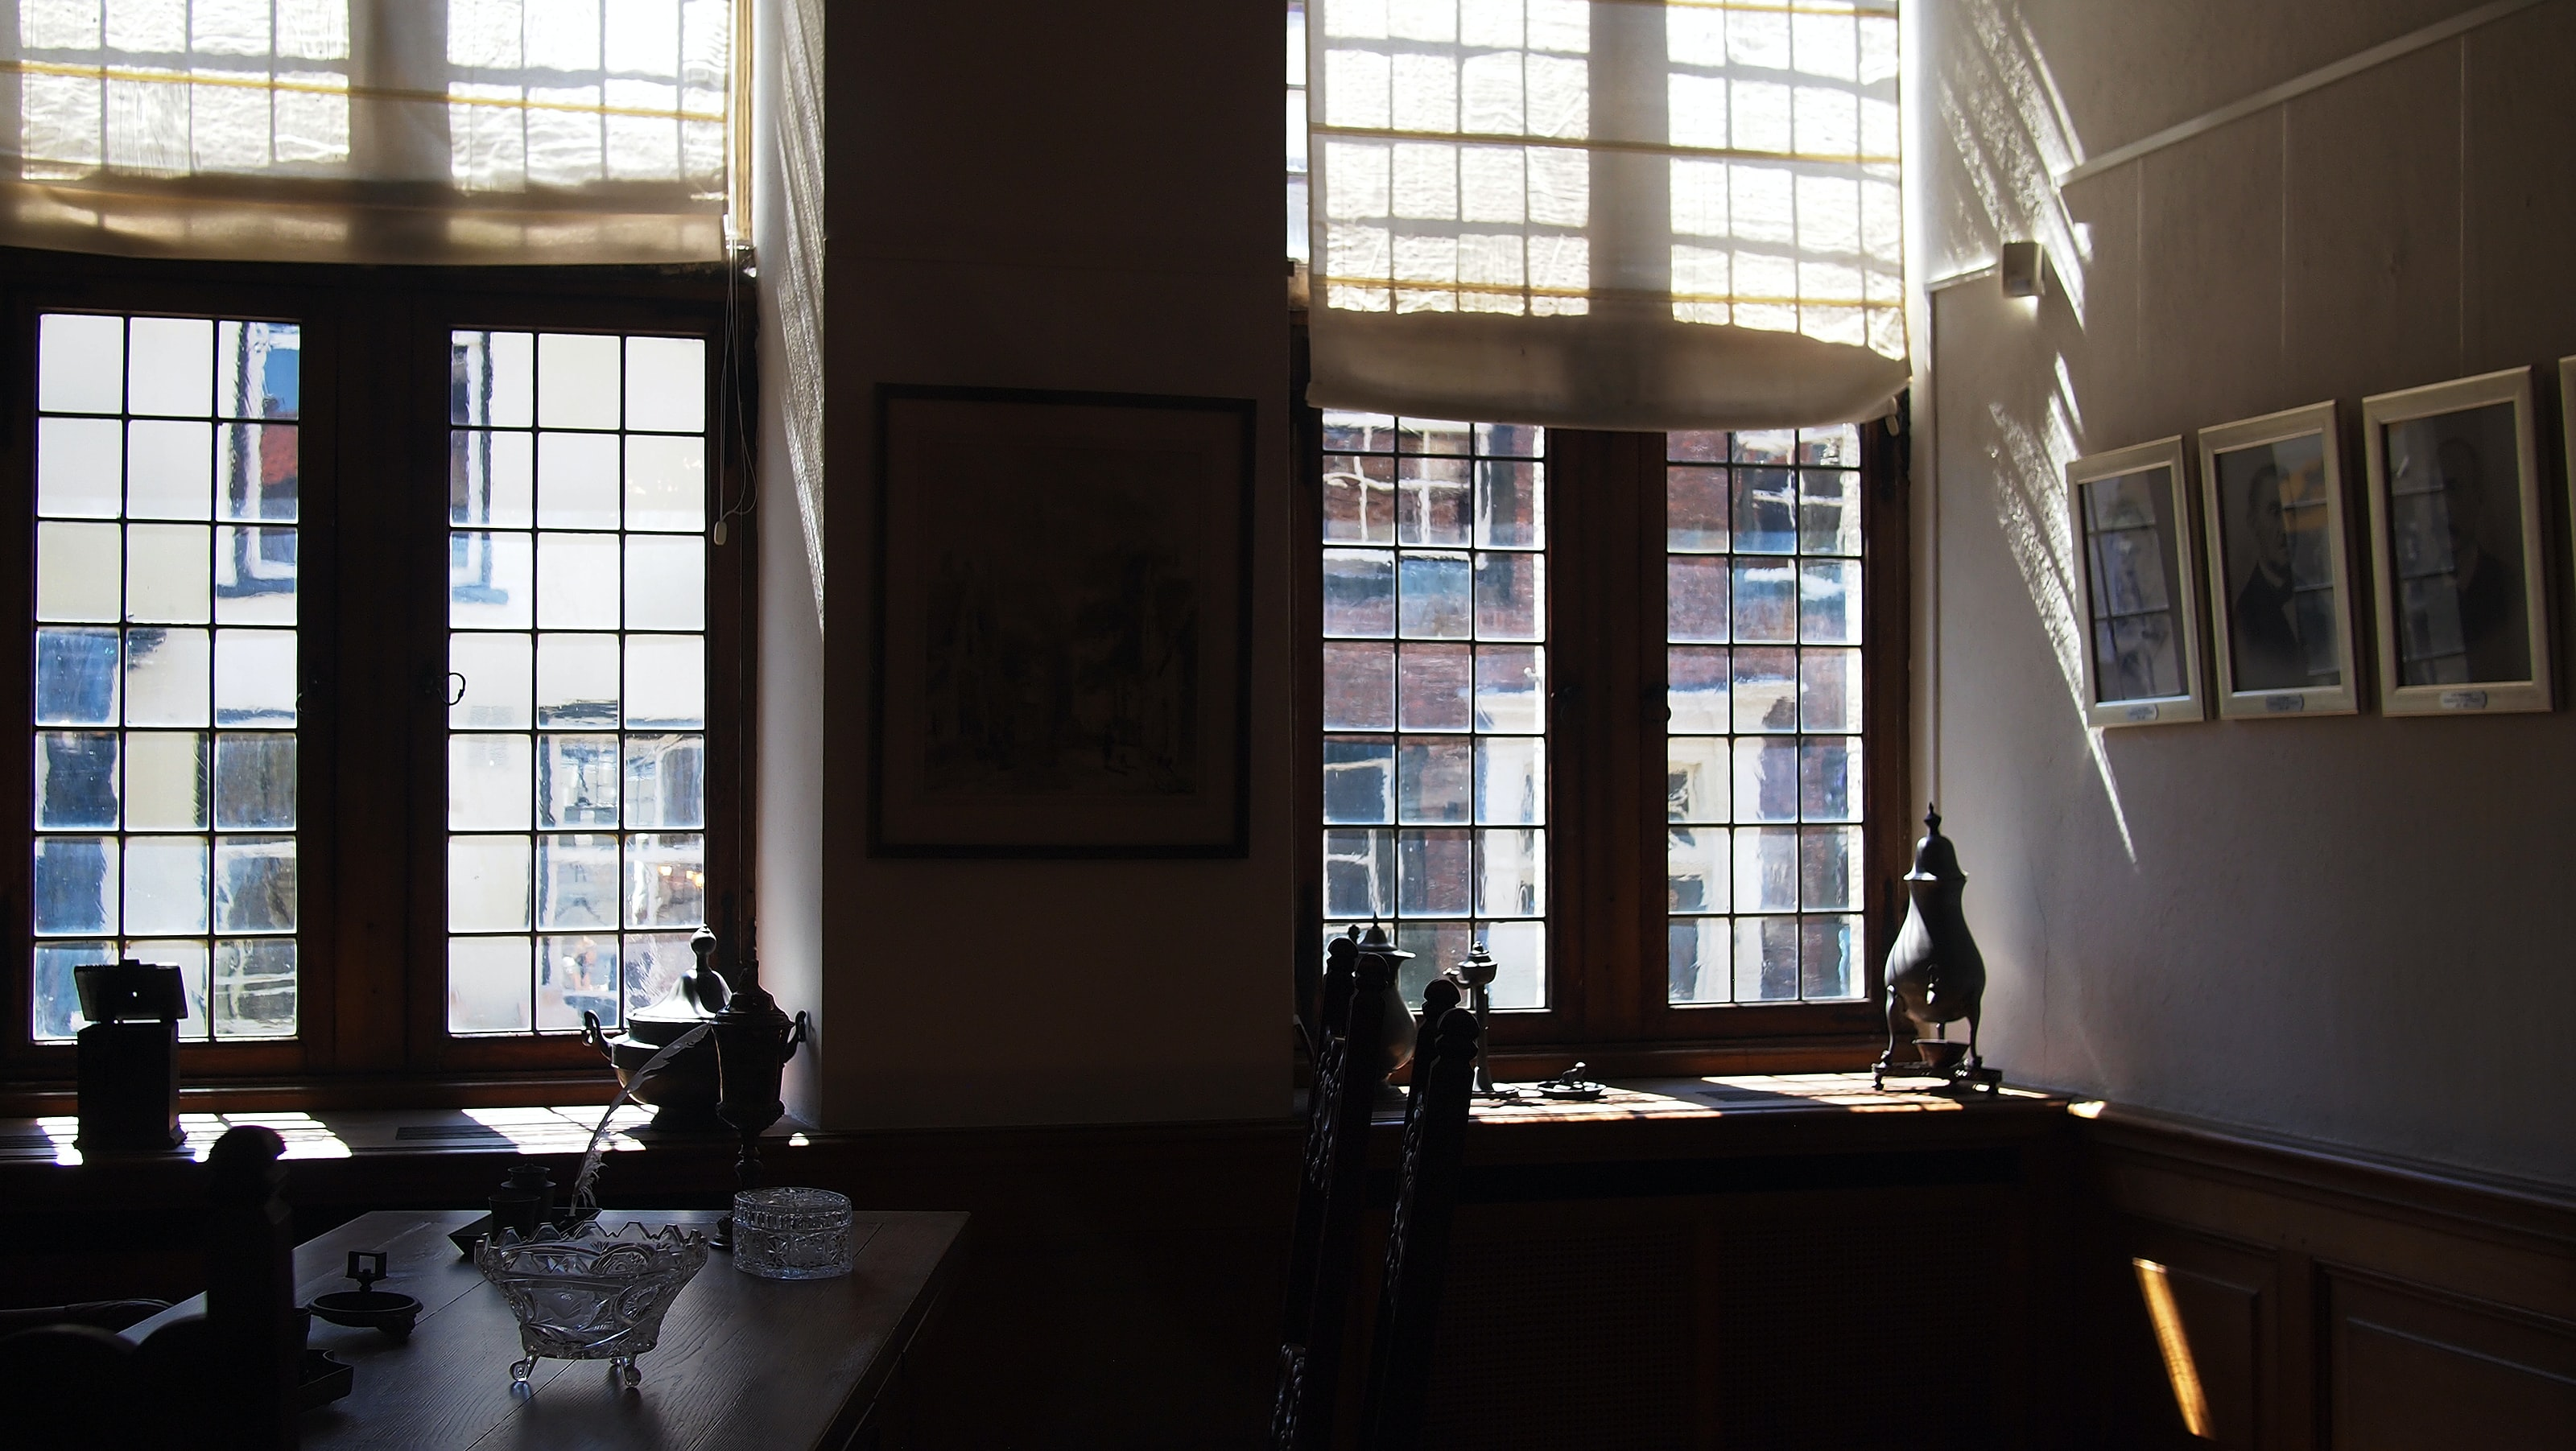 sun rays through the closed window of building